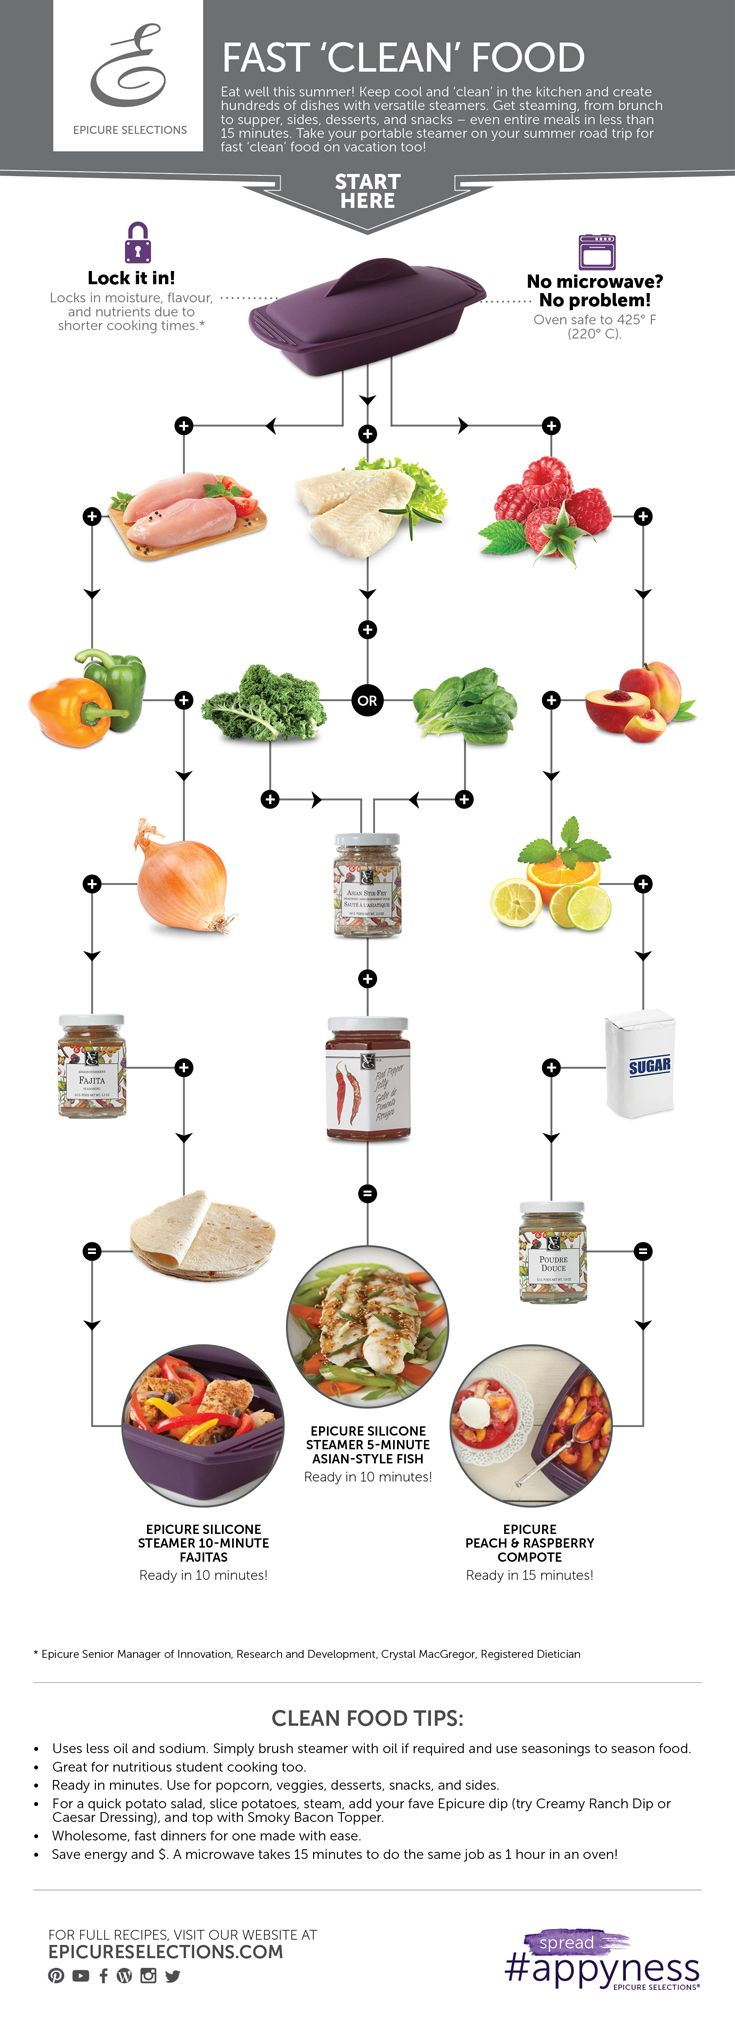 44 best steamed food recipes images on pinterest cooking food steamer 21 brilliant silicone inventions eight ways to make steamed vegetables taste amazing tips from epicures silicone steamers forumfinder Choice Image